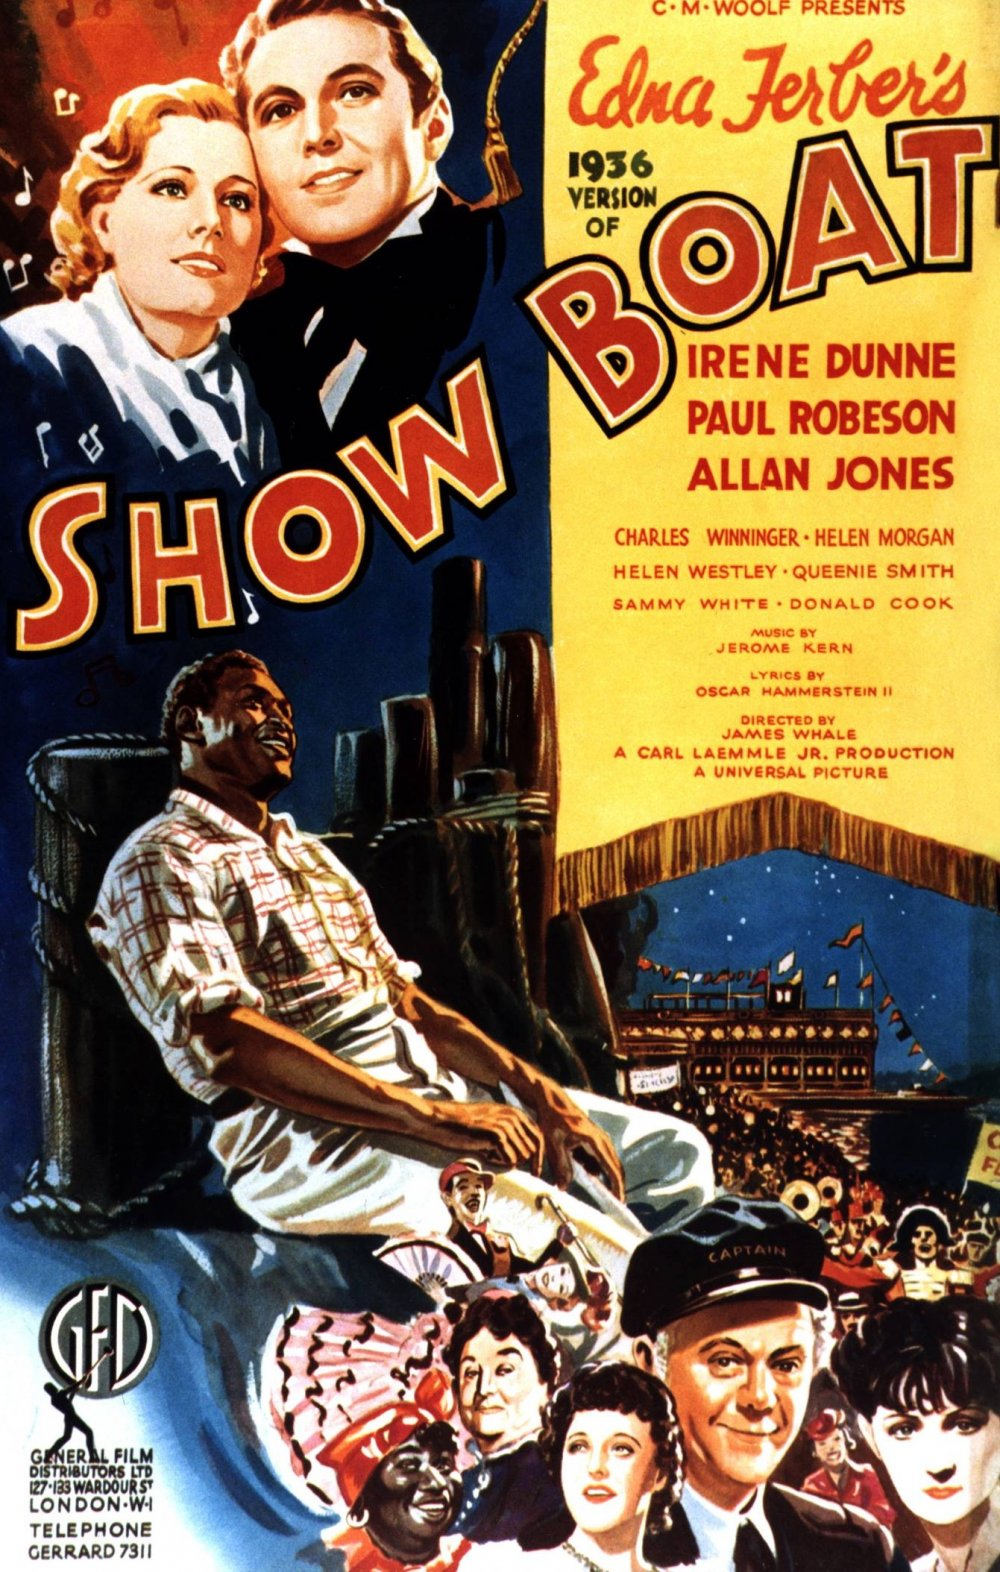 Show Boat (1936) film poster